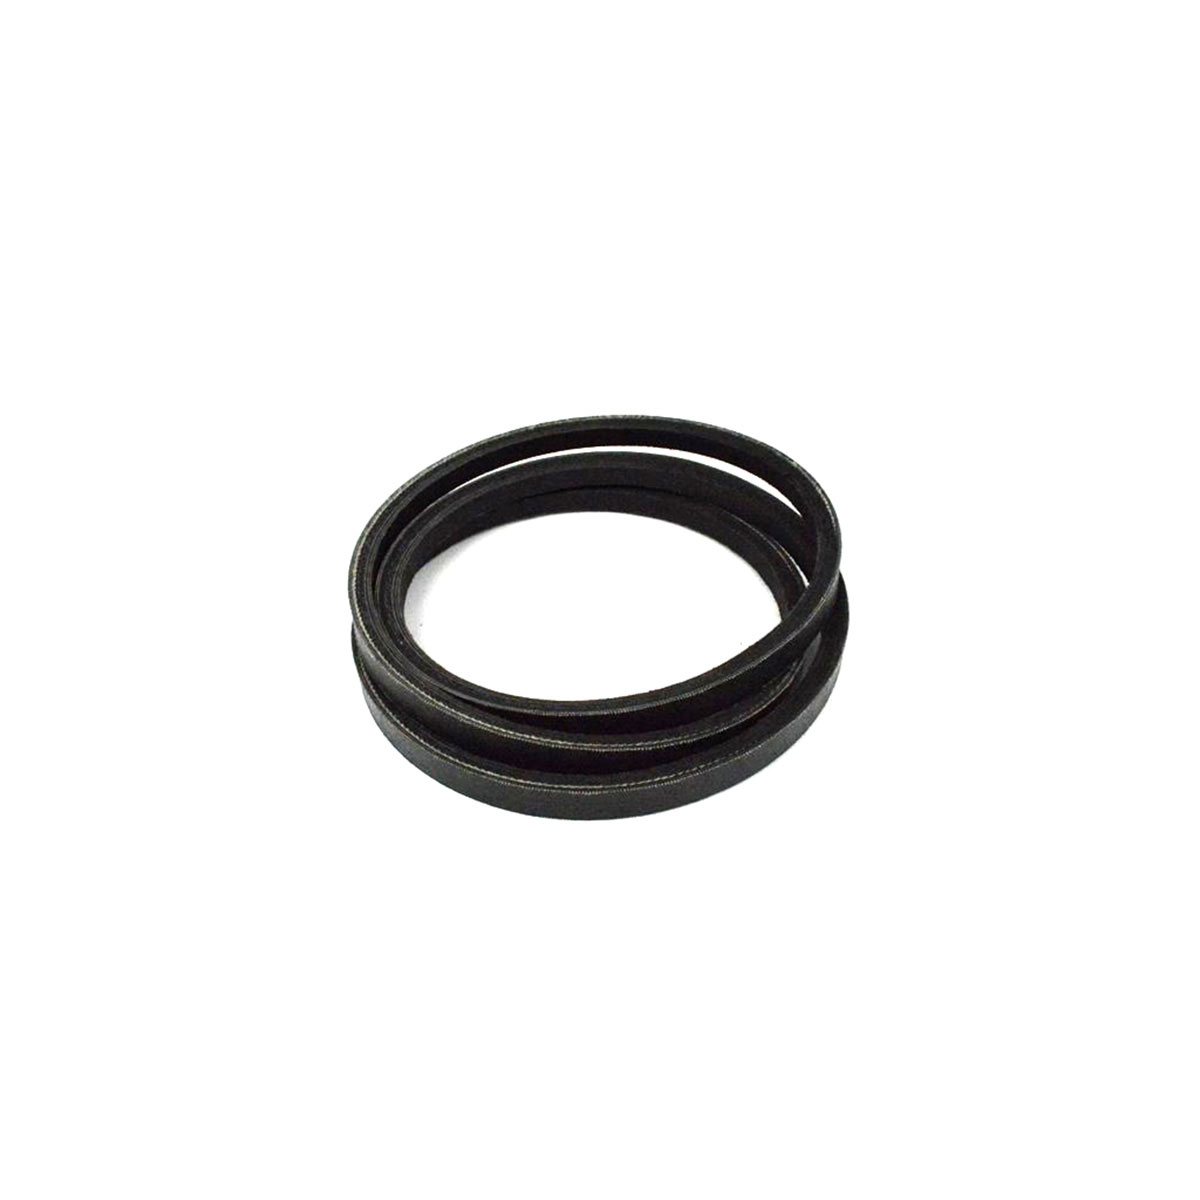 Scag Pump Drive Belt 481461